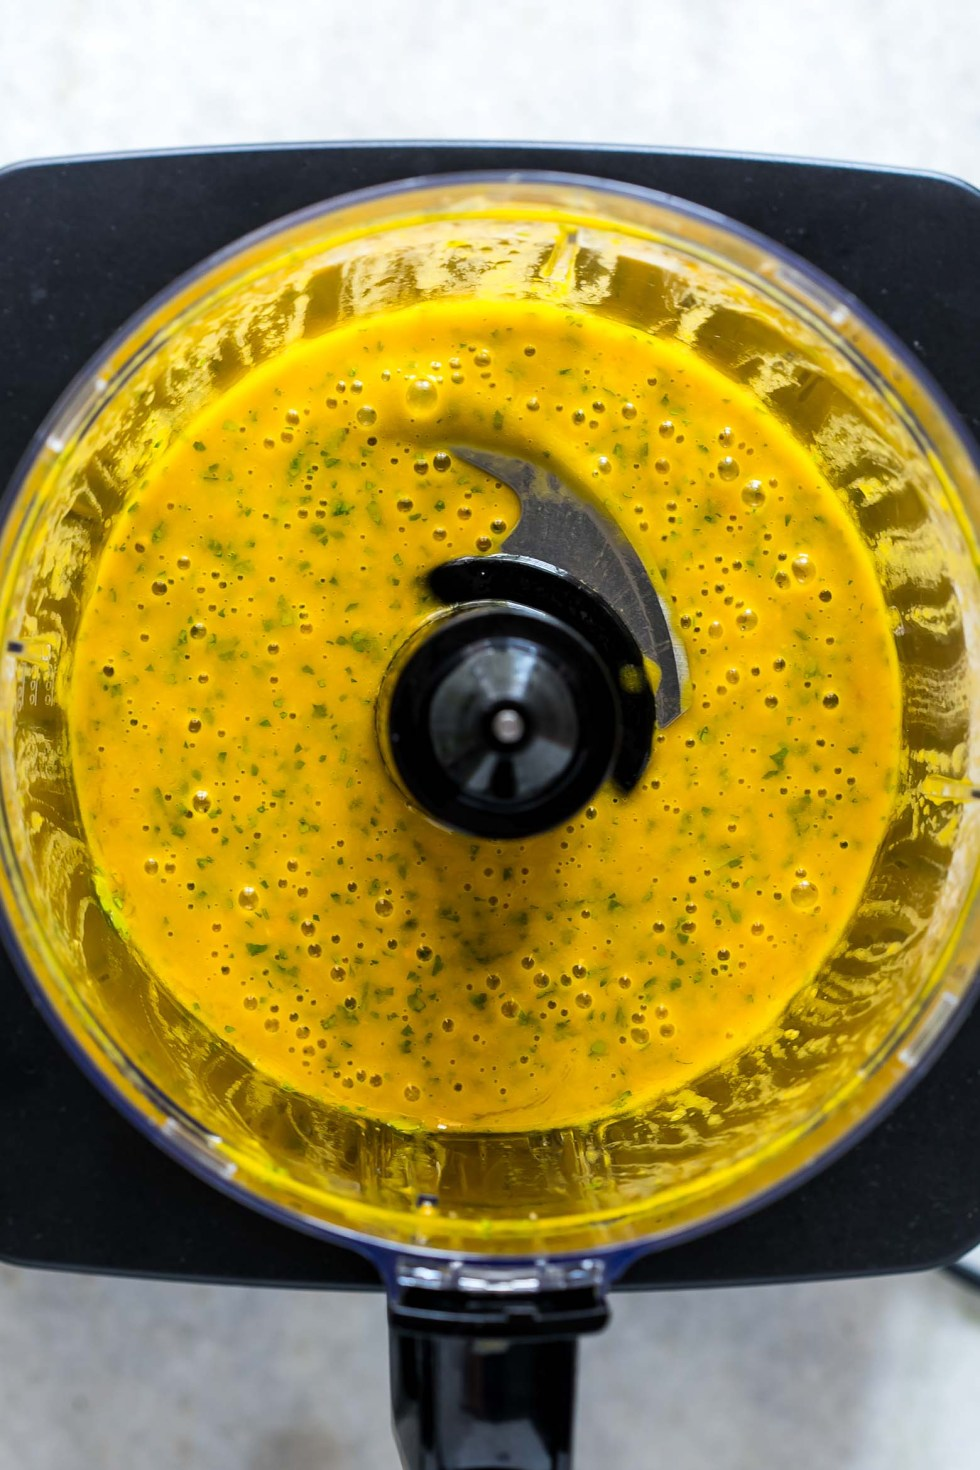 Mango Cilantro Salad Dressing is a fresh, tropical, creamy dressing that's super healthy, easily made in a blender and is gluten free. You'll want to pour it on everything!